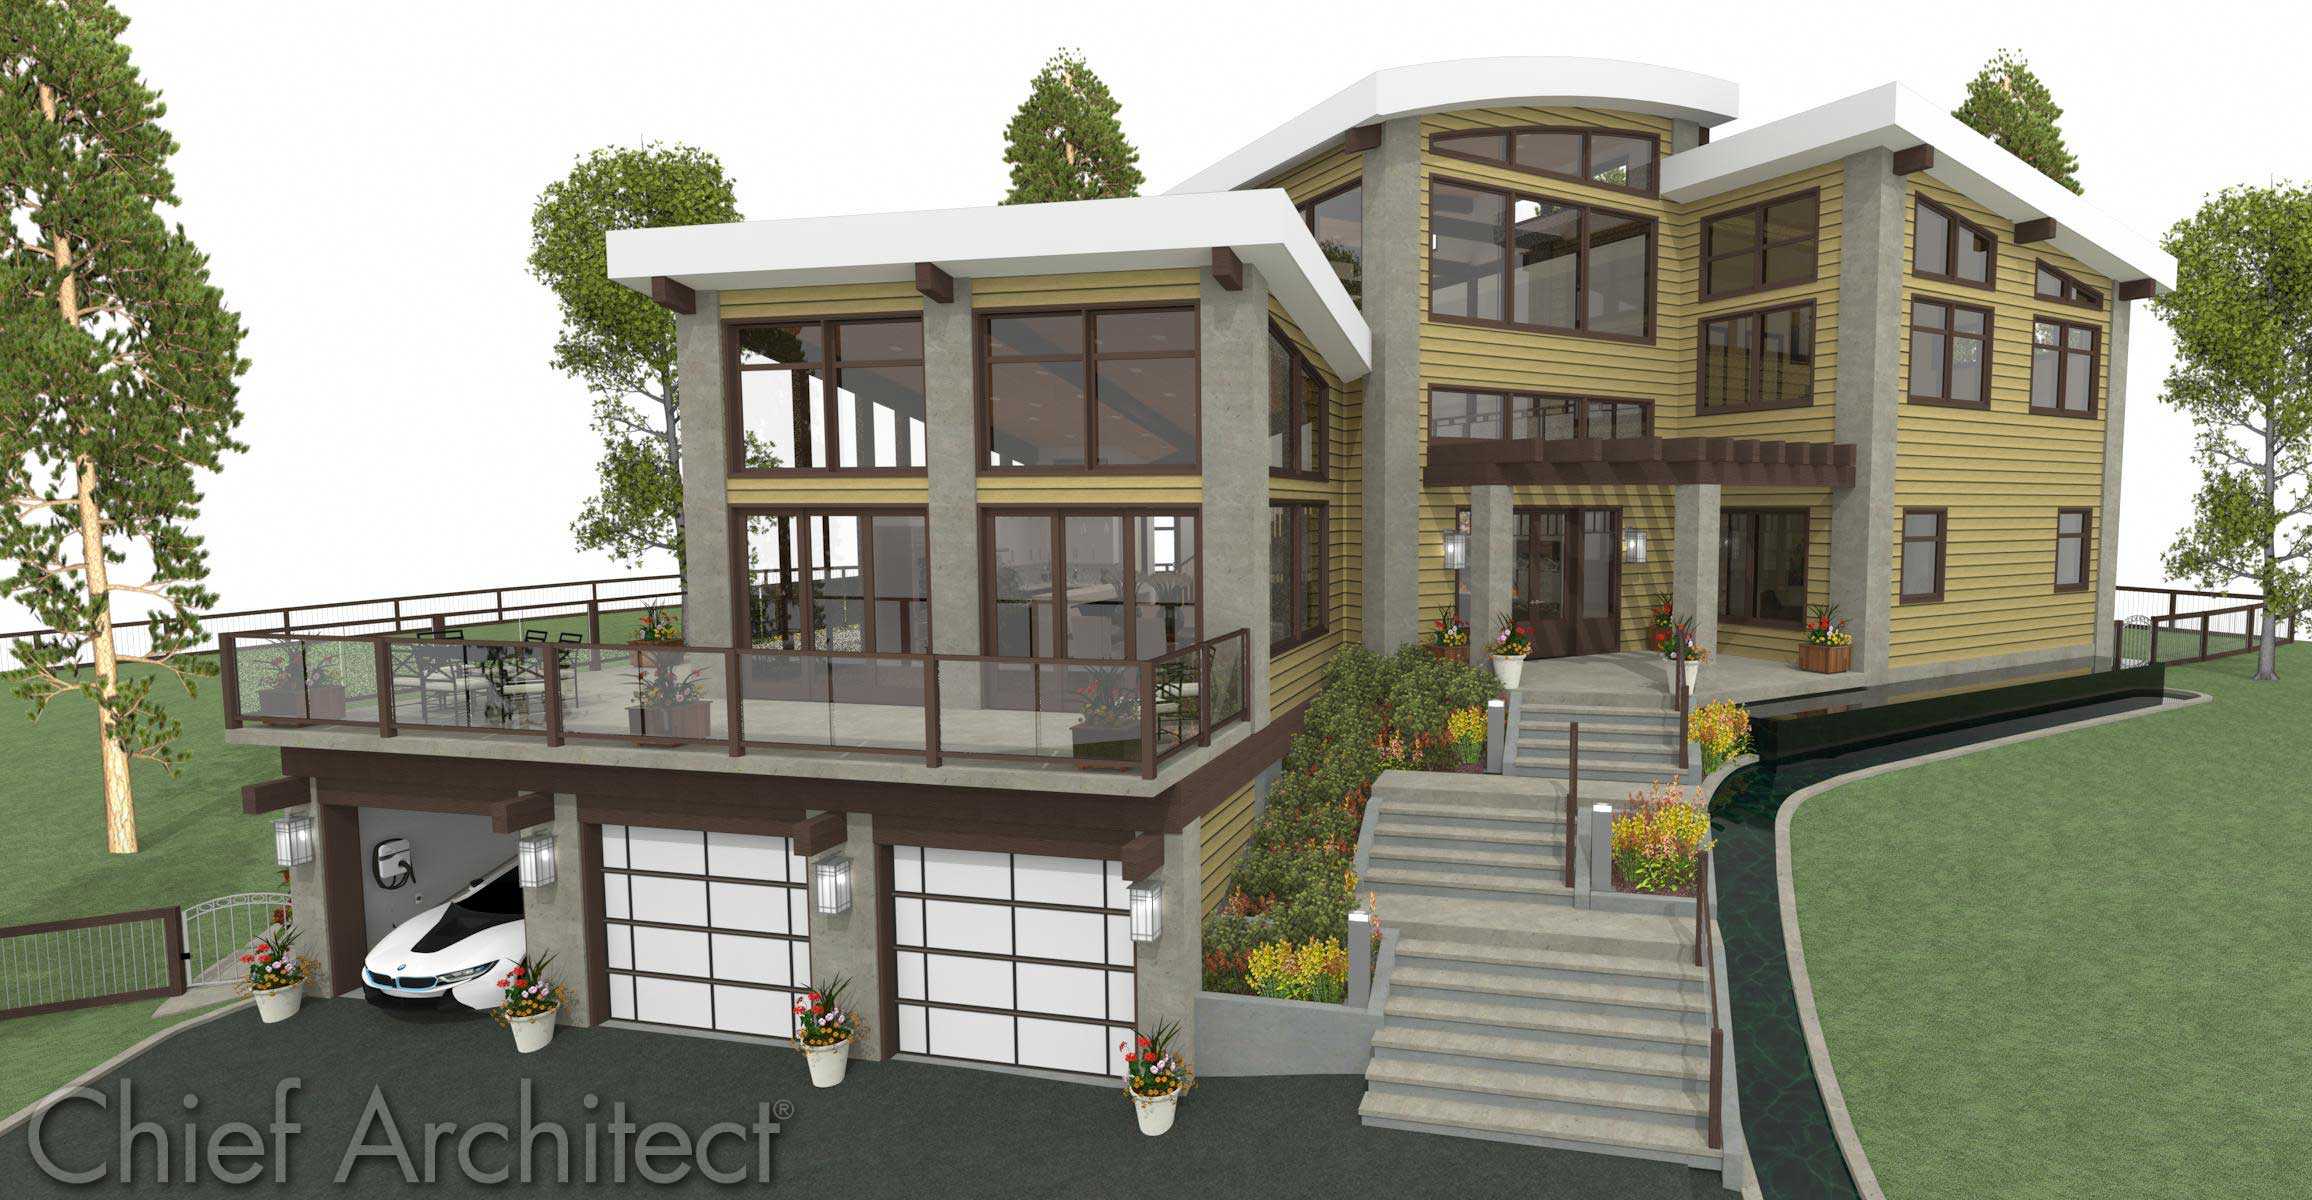 big home designs.  img title Breckenridge class u imageCenter src https cloud chiefarchitect com 1 samples projects breckenridge thumb jpg alt A large Chief Architect Home Design Software Samples Gallery